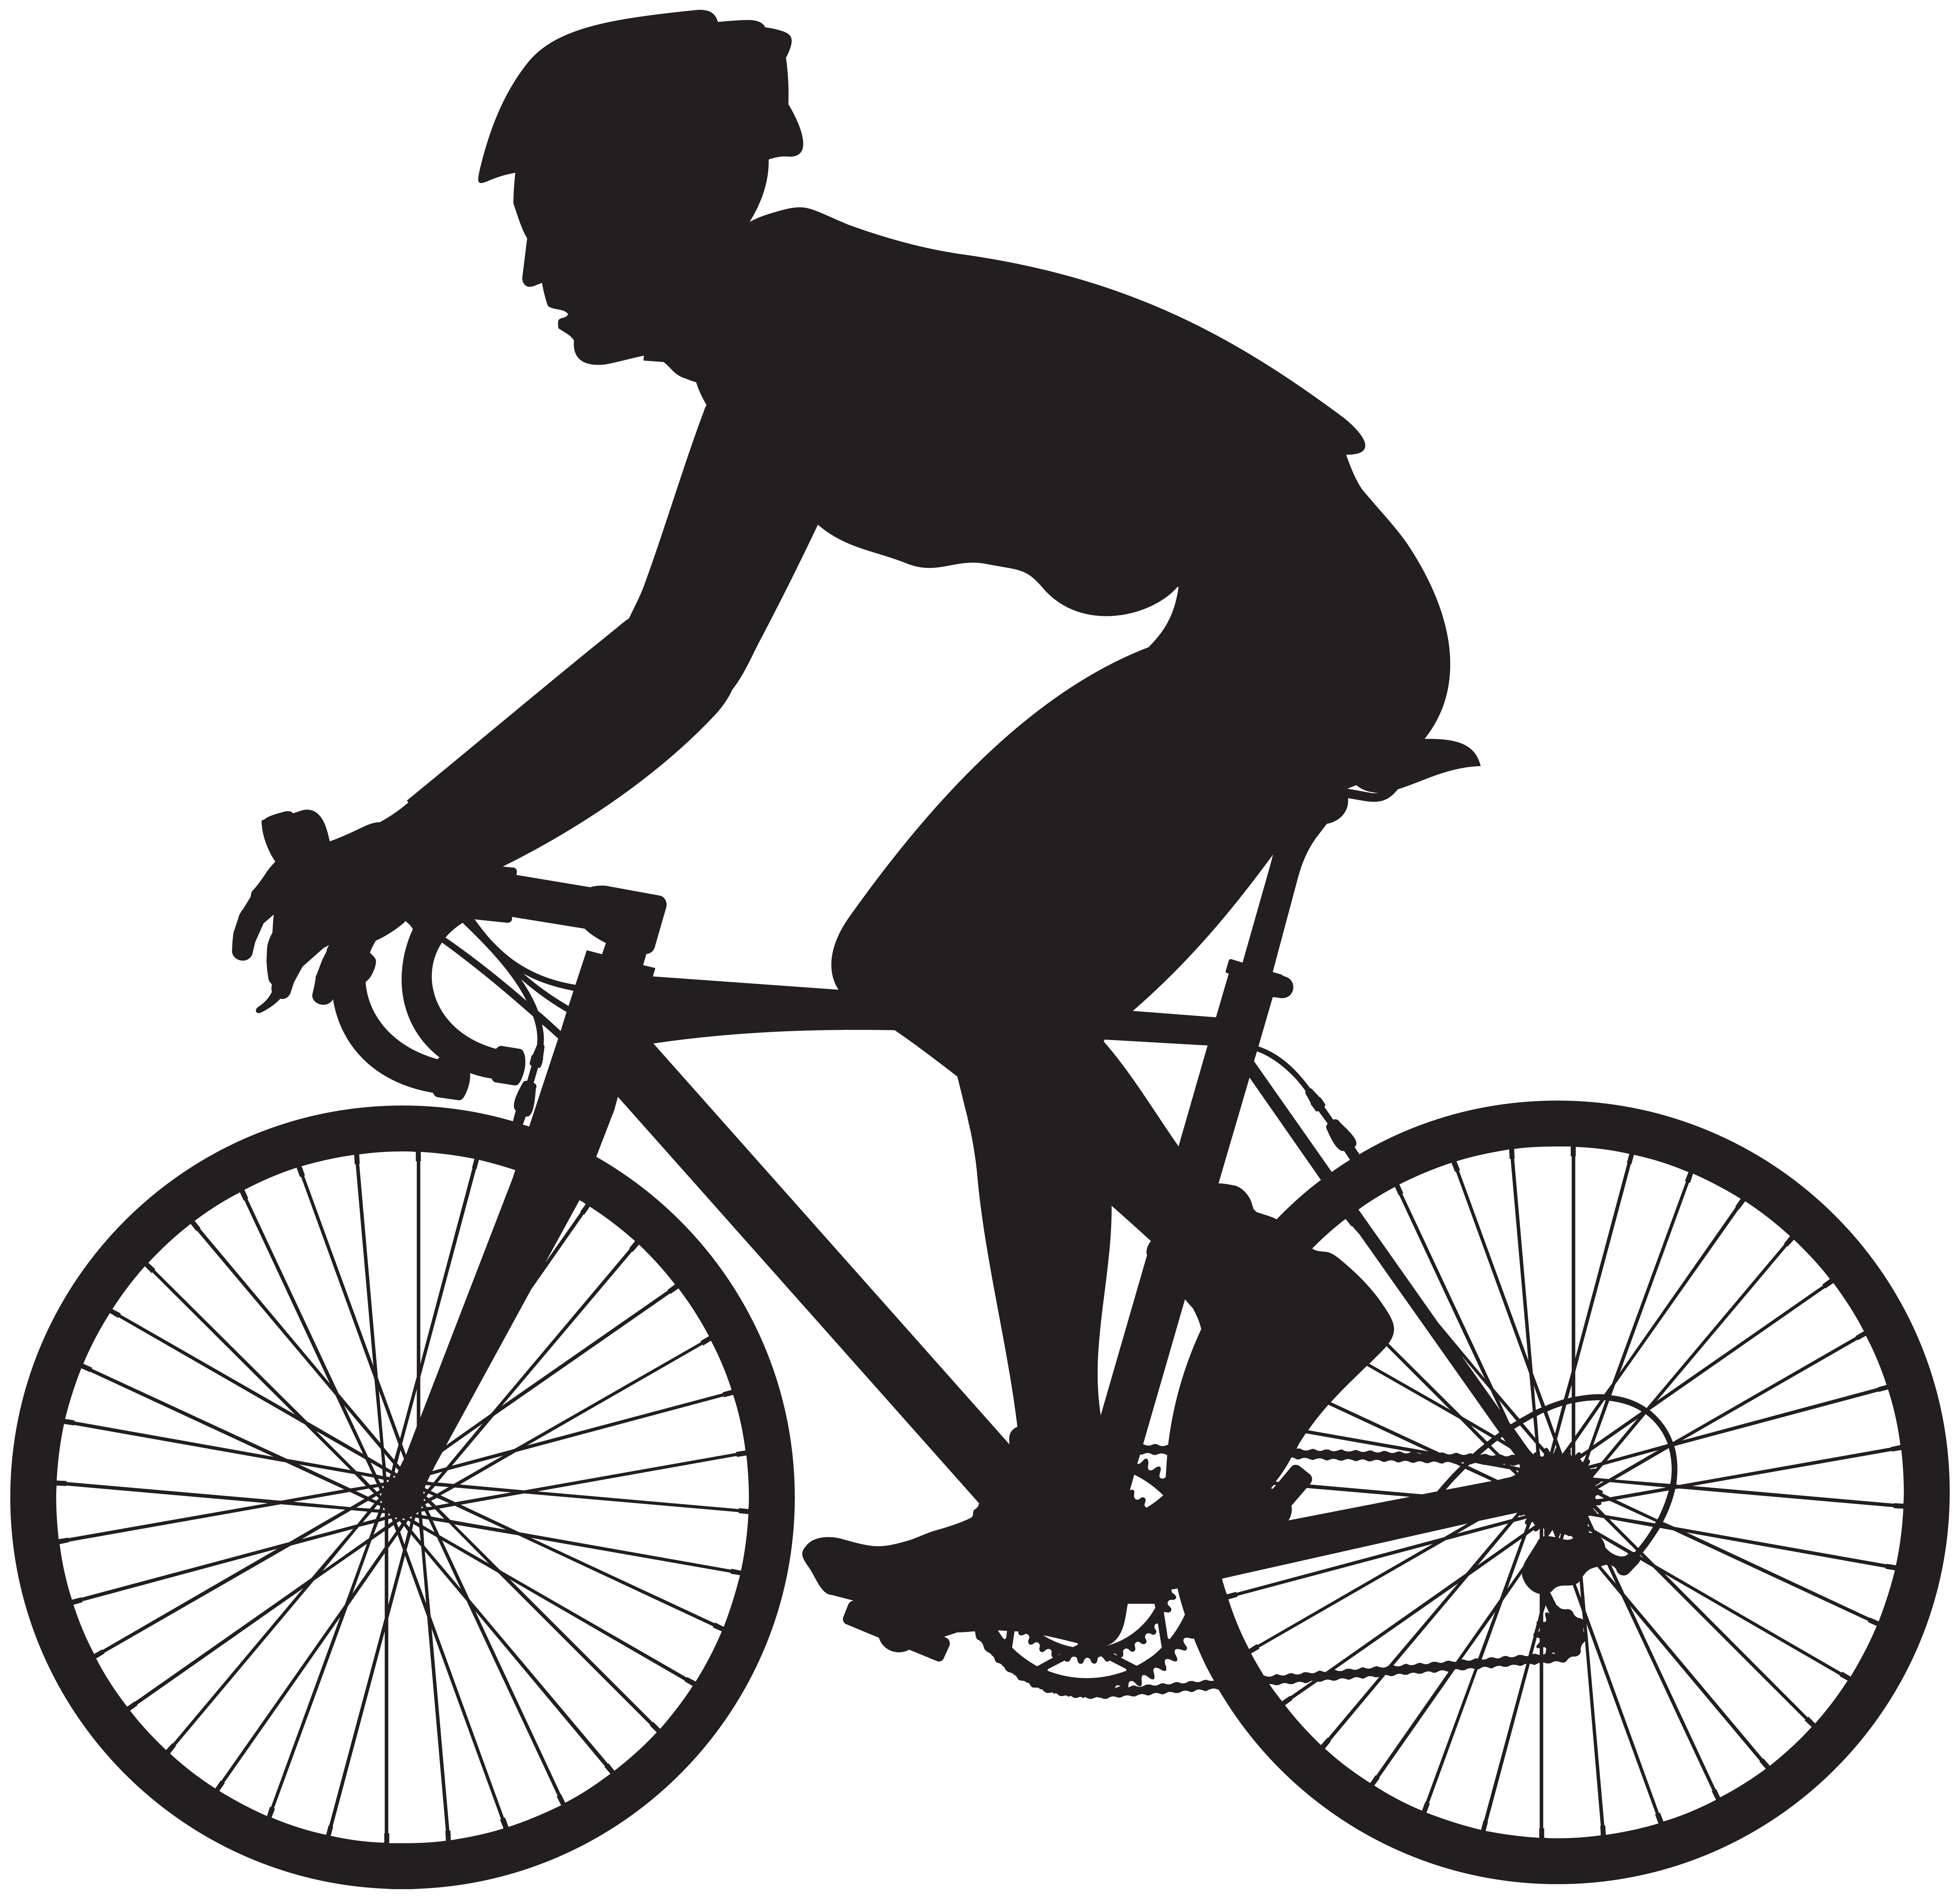 Cycle clipart pedal bike. Bicycle wheel cycling bmx